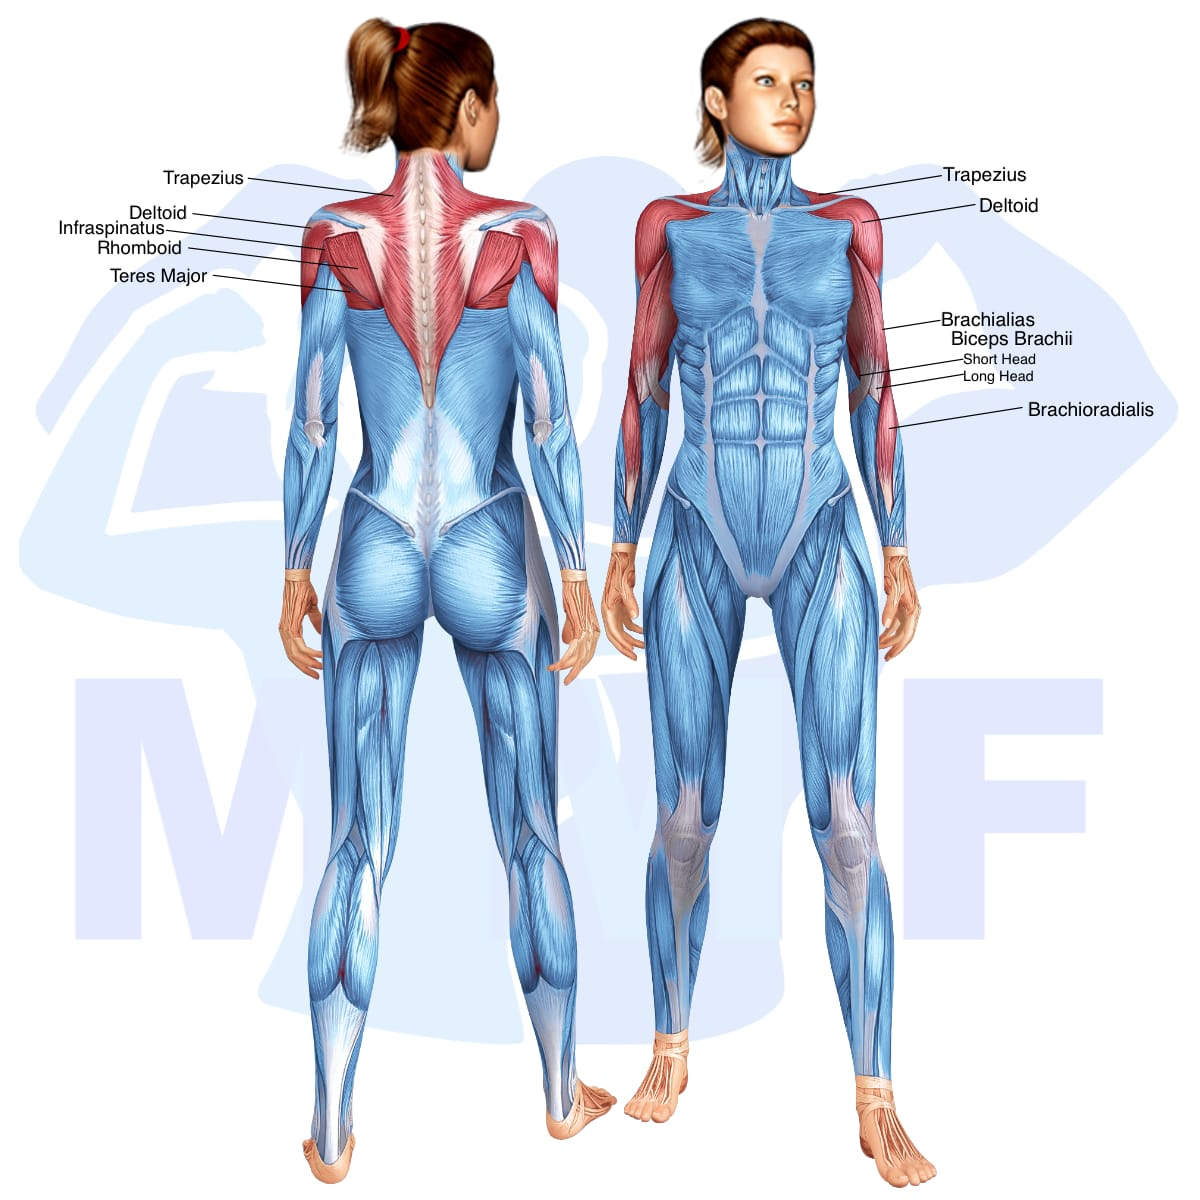 Skeletal muscle systems for a muscular woman, with muscles highlighted in red that are use during resistance band upright rows.